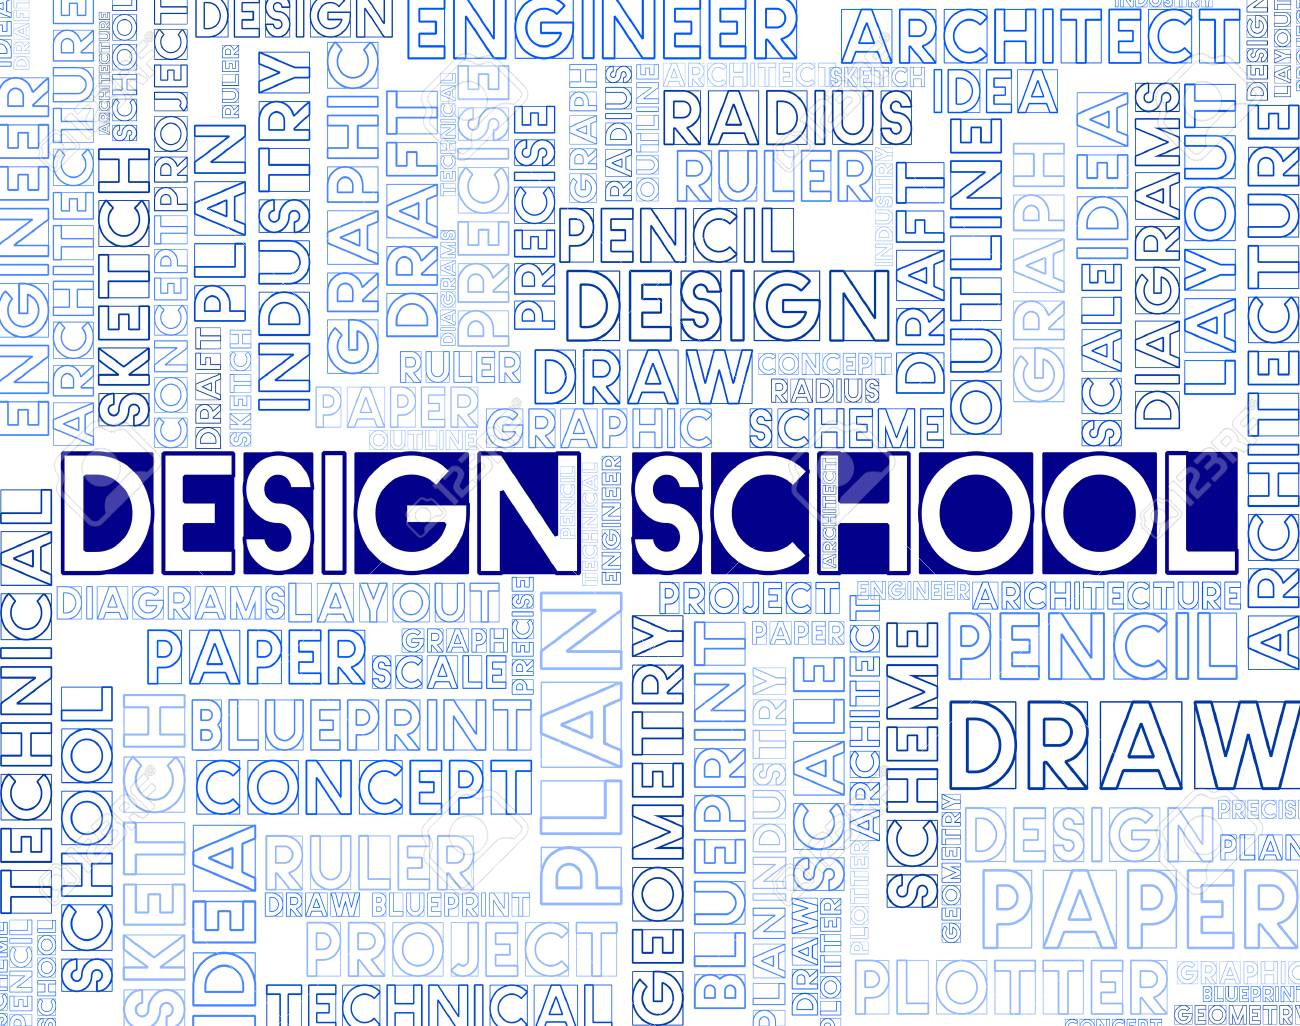 Design school meaning artwork studying and college stock photo design school meaning artwork studying and college stock photo 61996267 malvernweather Choice Image